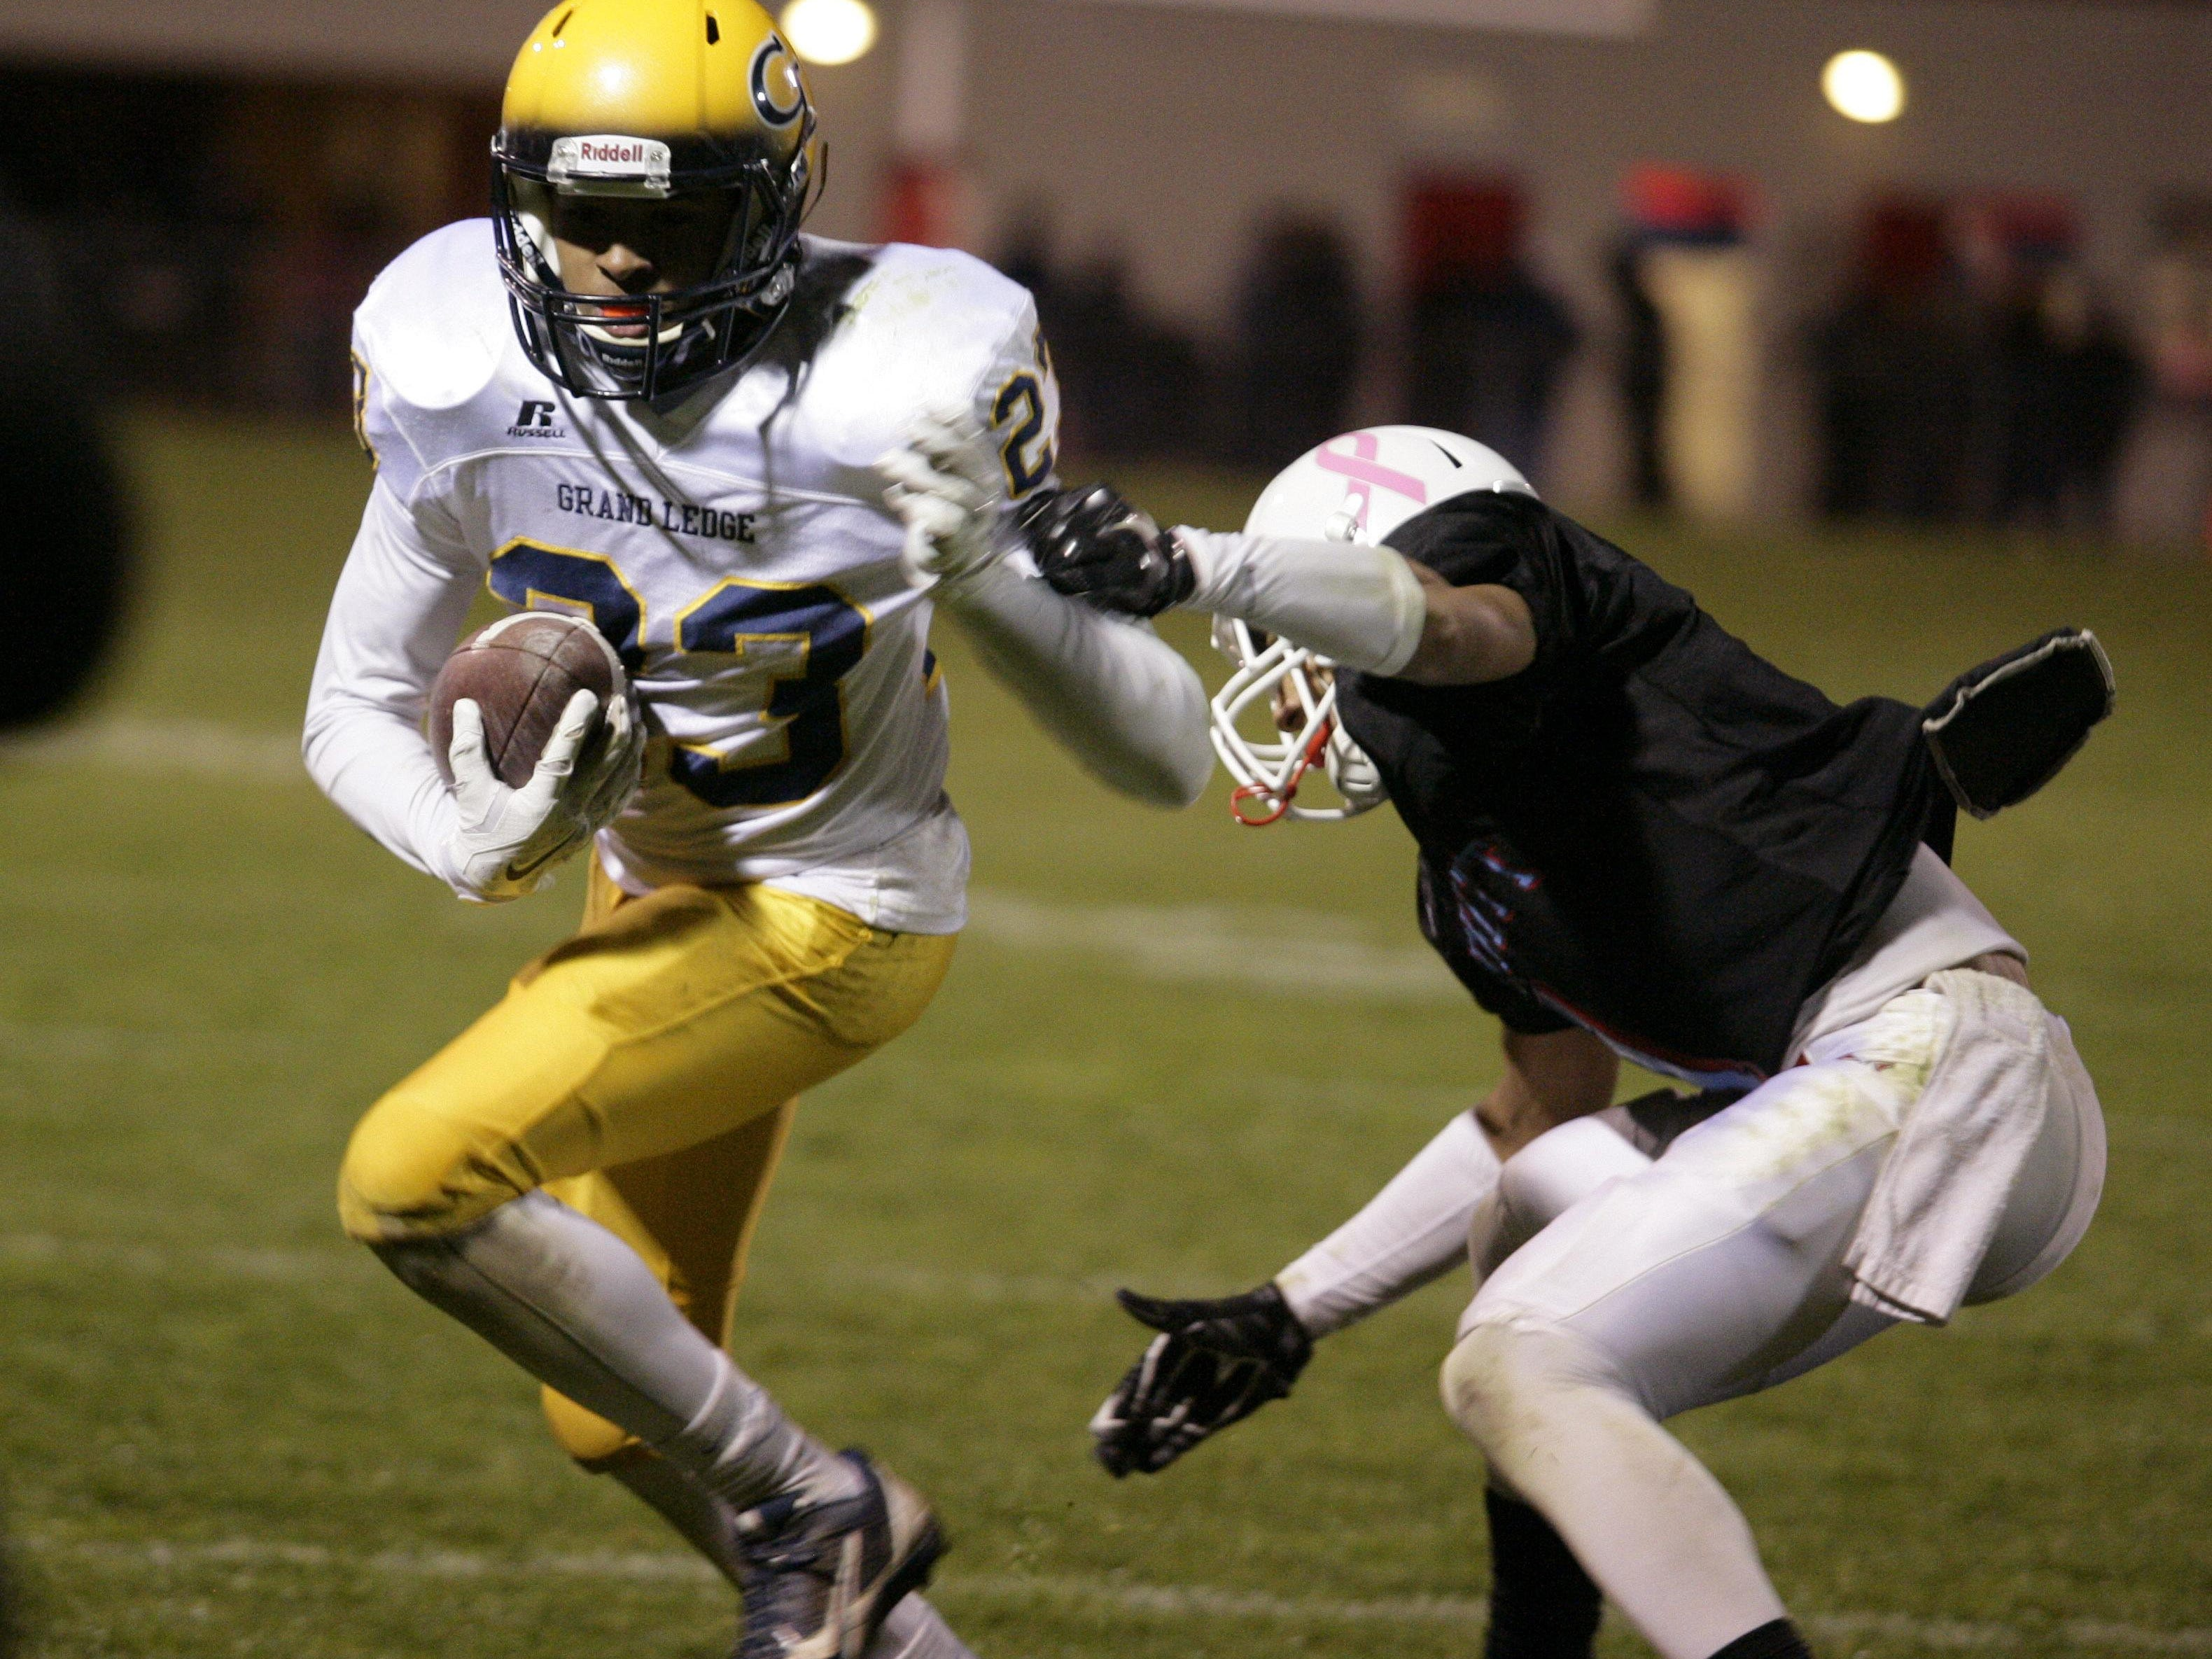 Senior Malek Adams was a first team all-CAAC Blue receiver last fall and is a key offensive returner for Grand Ledge.